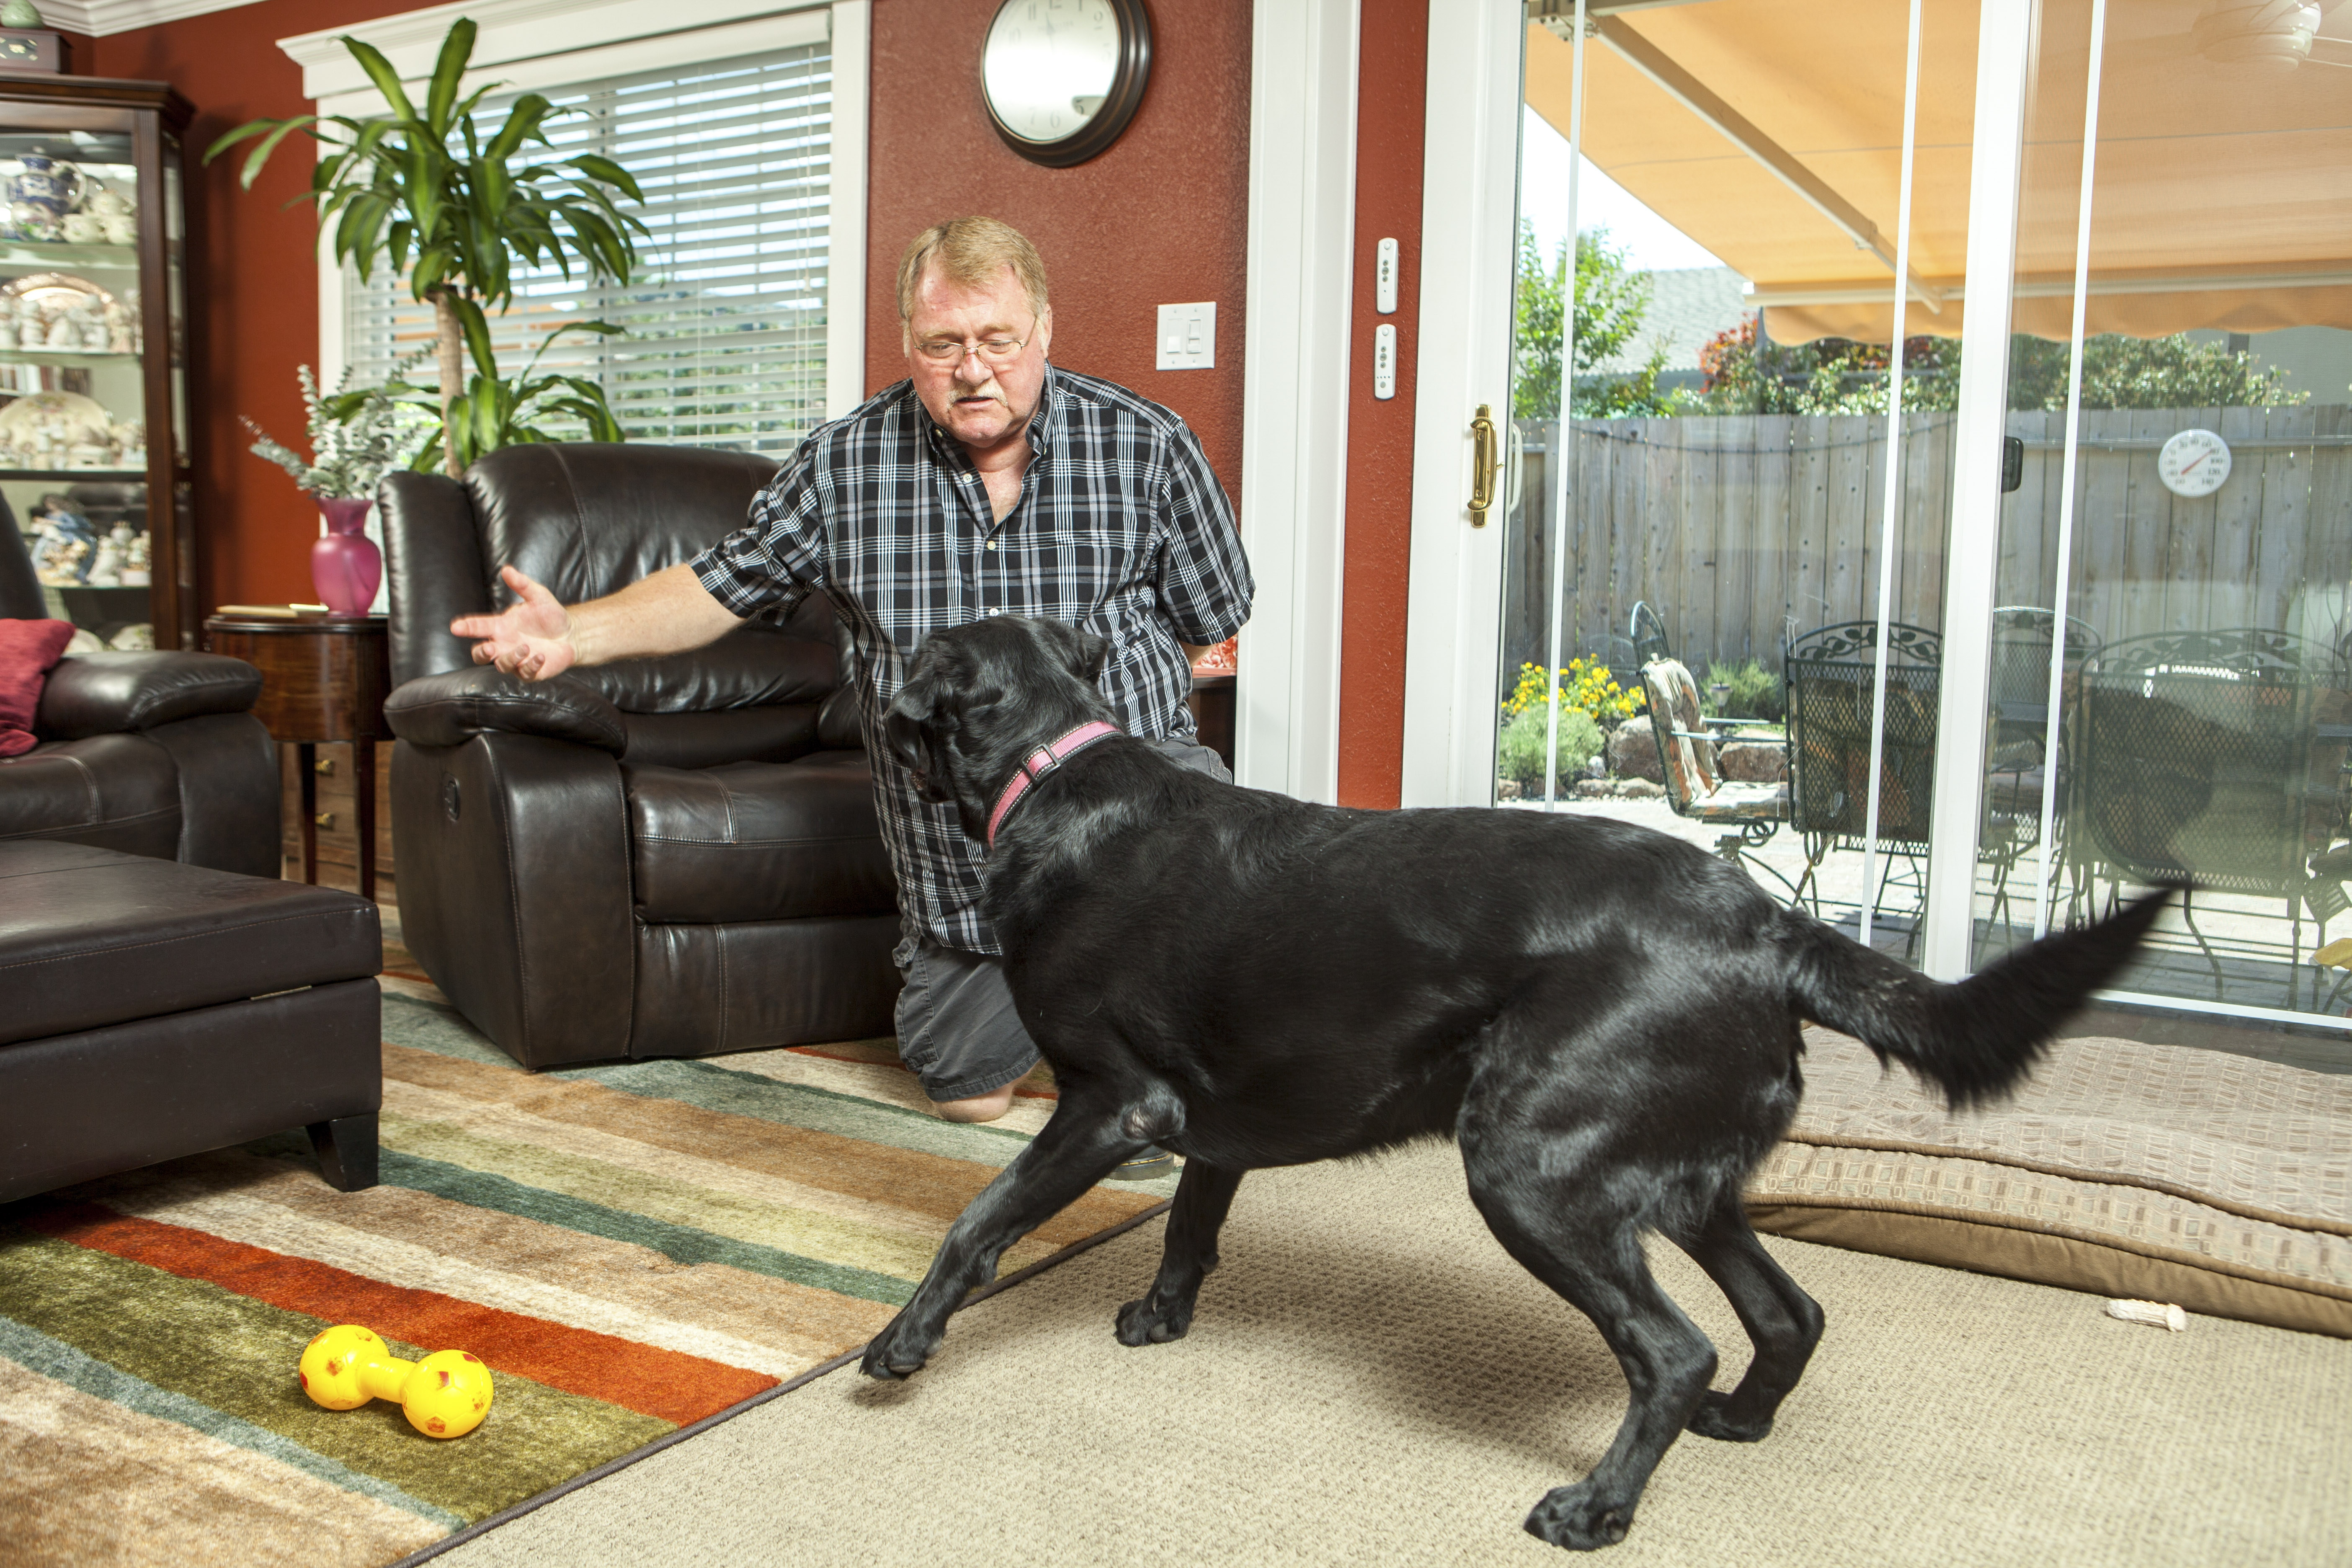 Phil Ashburn, a part-time dog trainer from Pleasonton, Calif., believes he didn't get a fair arbitration hearing when he brought a case against his financial adviser.